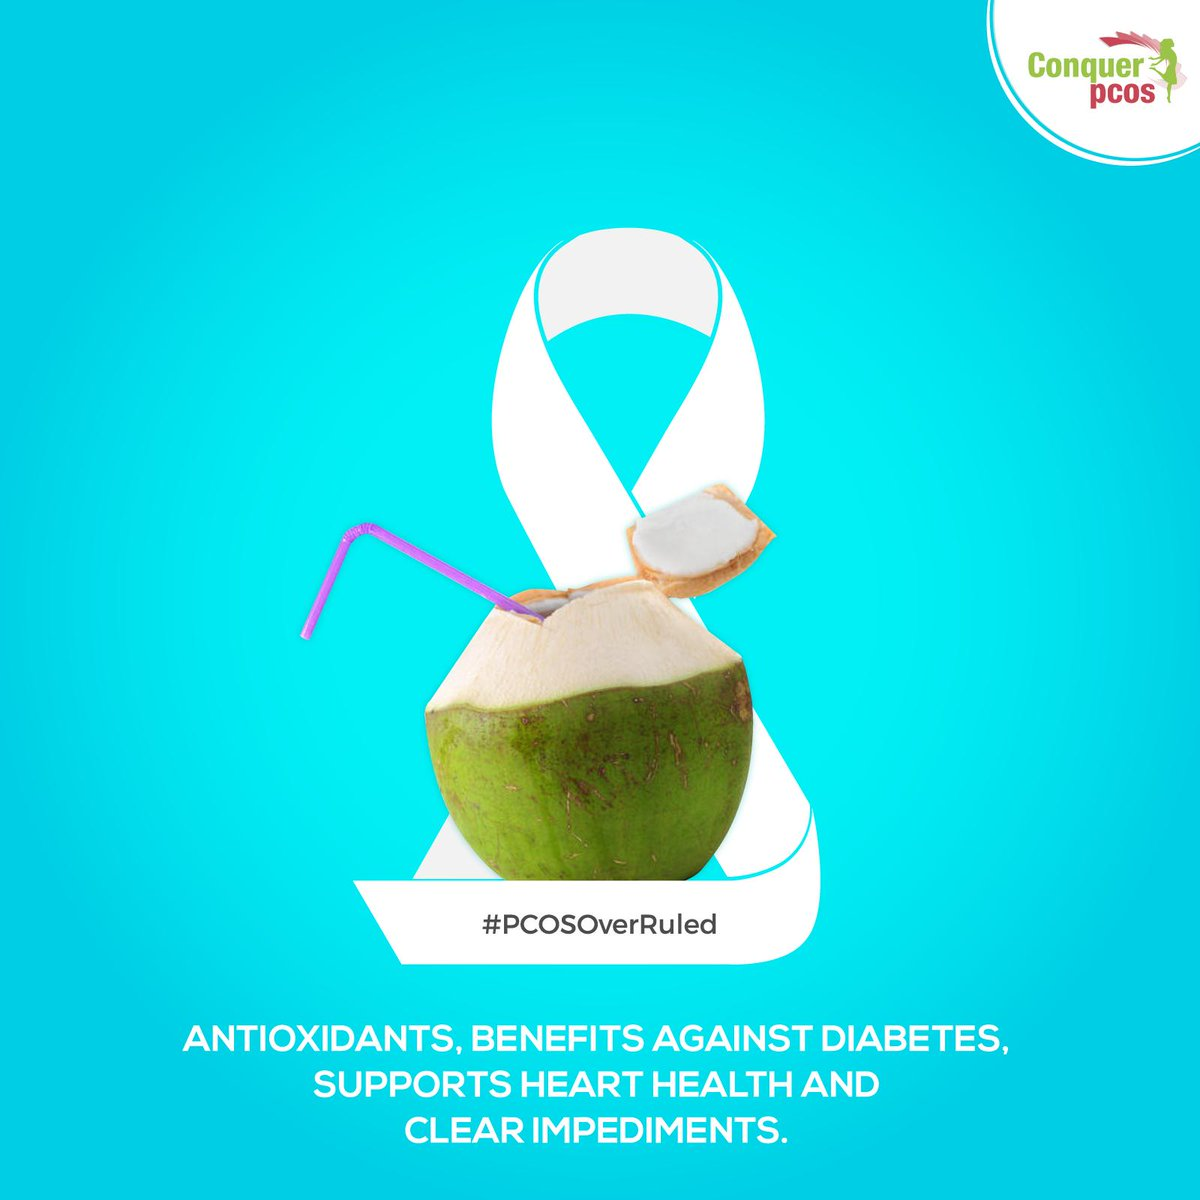 Conquer Pcos On Twitter Ready To Overrule Pcos Consuming Coconut Water Daily Helps Women With Pcos In Numerous Ways Since It Is Rich In Potassium Fiber Vitaminc And Many Other Nutrients It